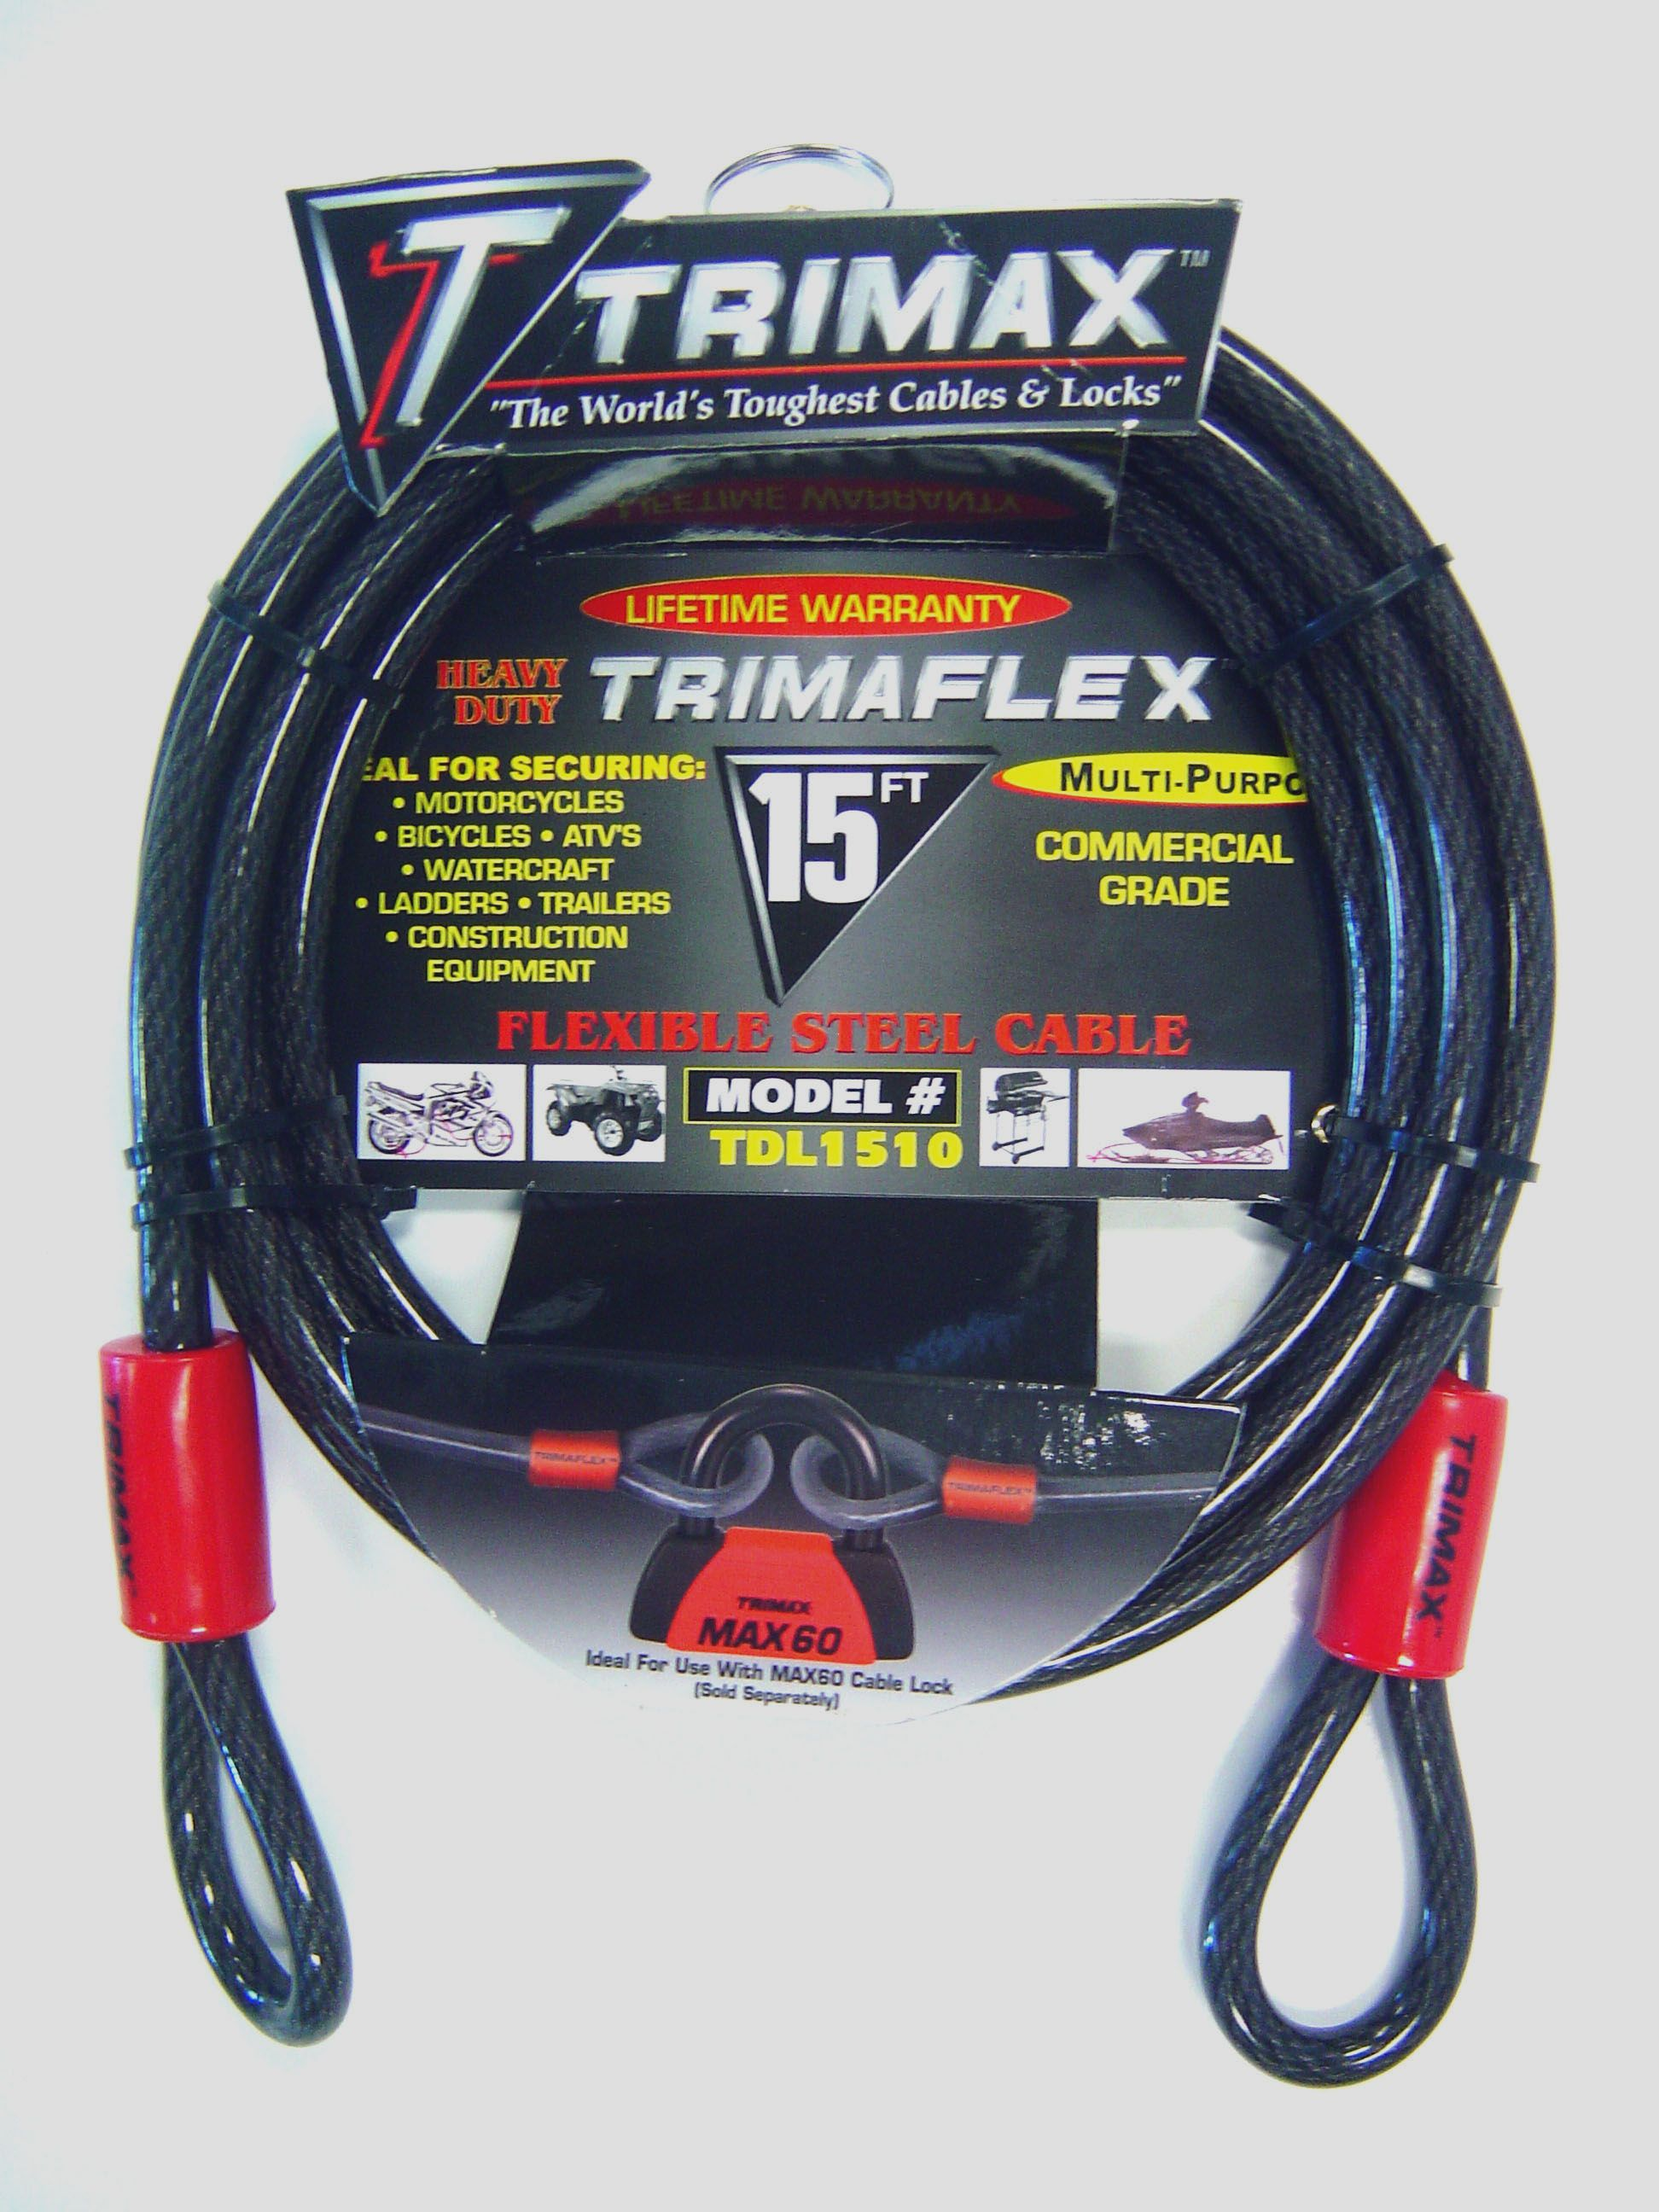 TDL1510 Trimax Locks Security Cable Without Lock